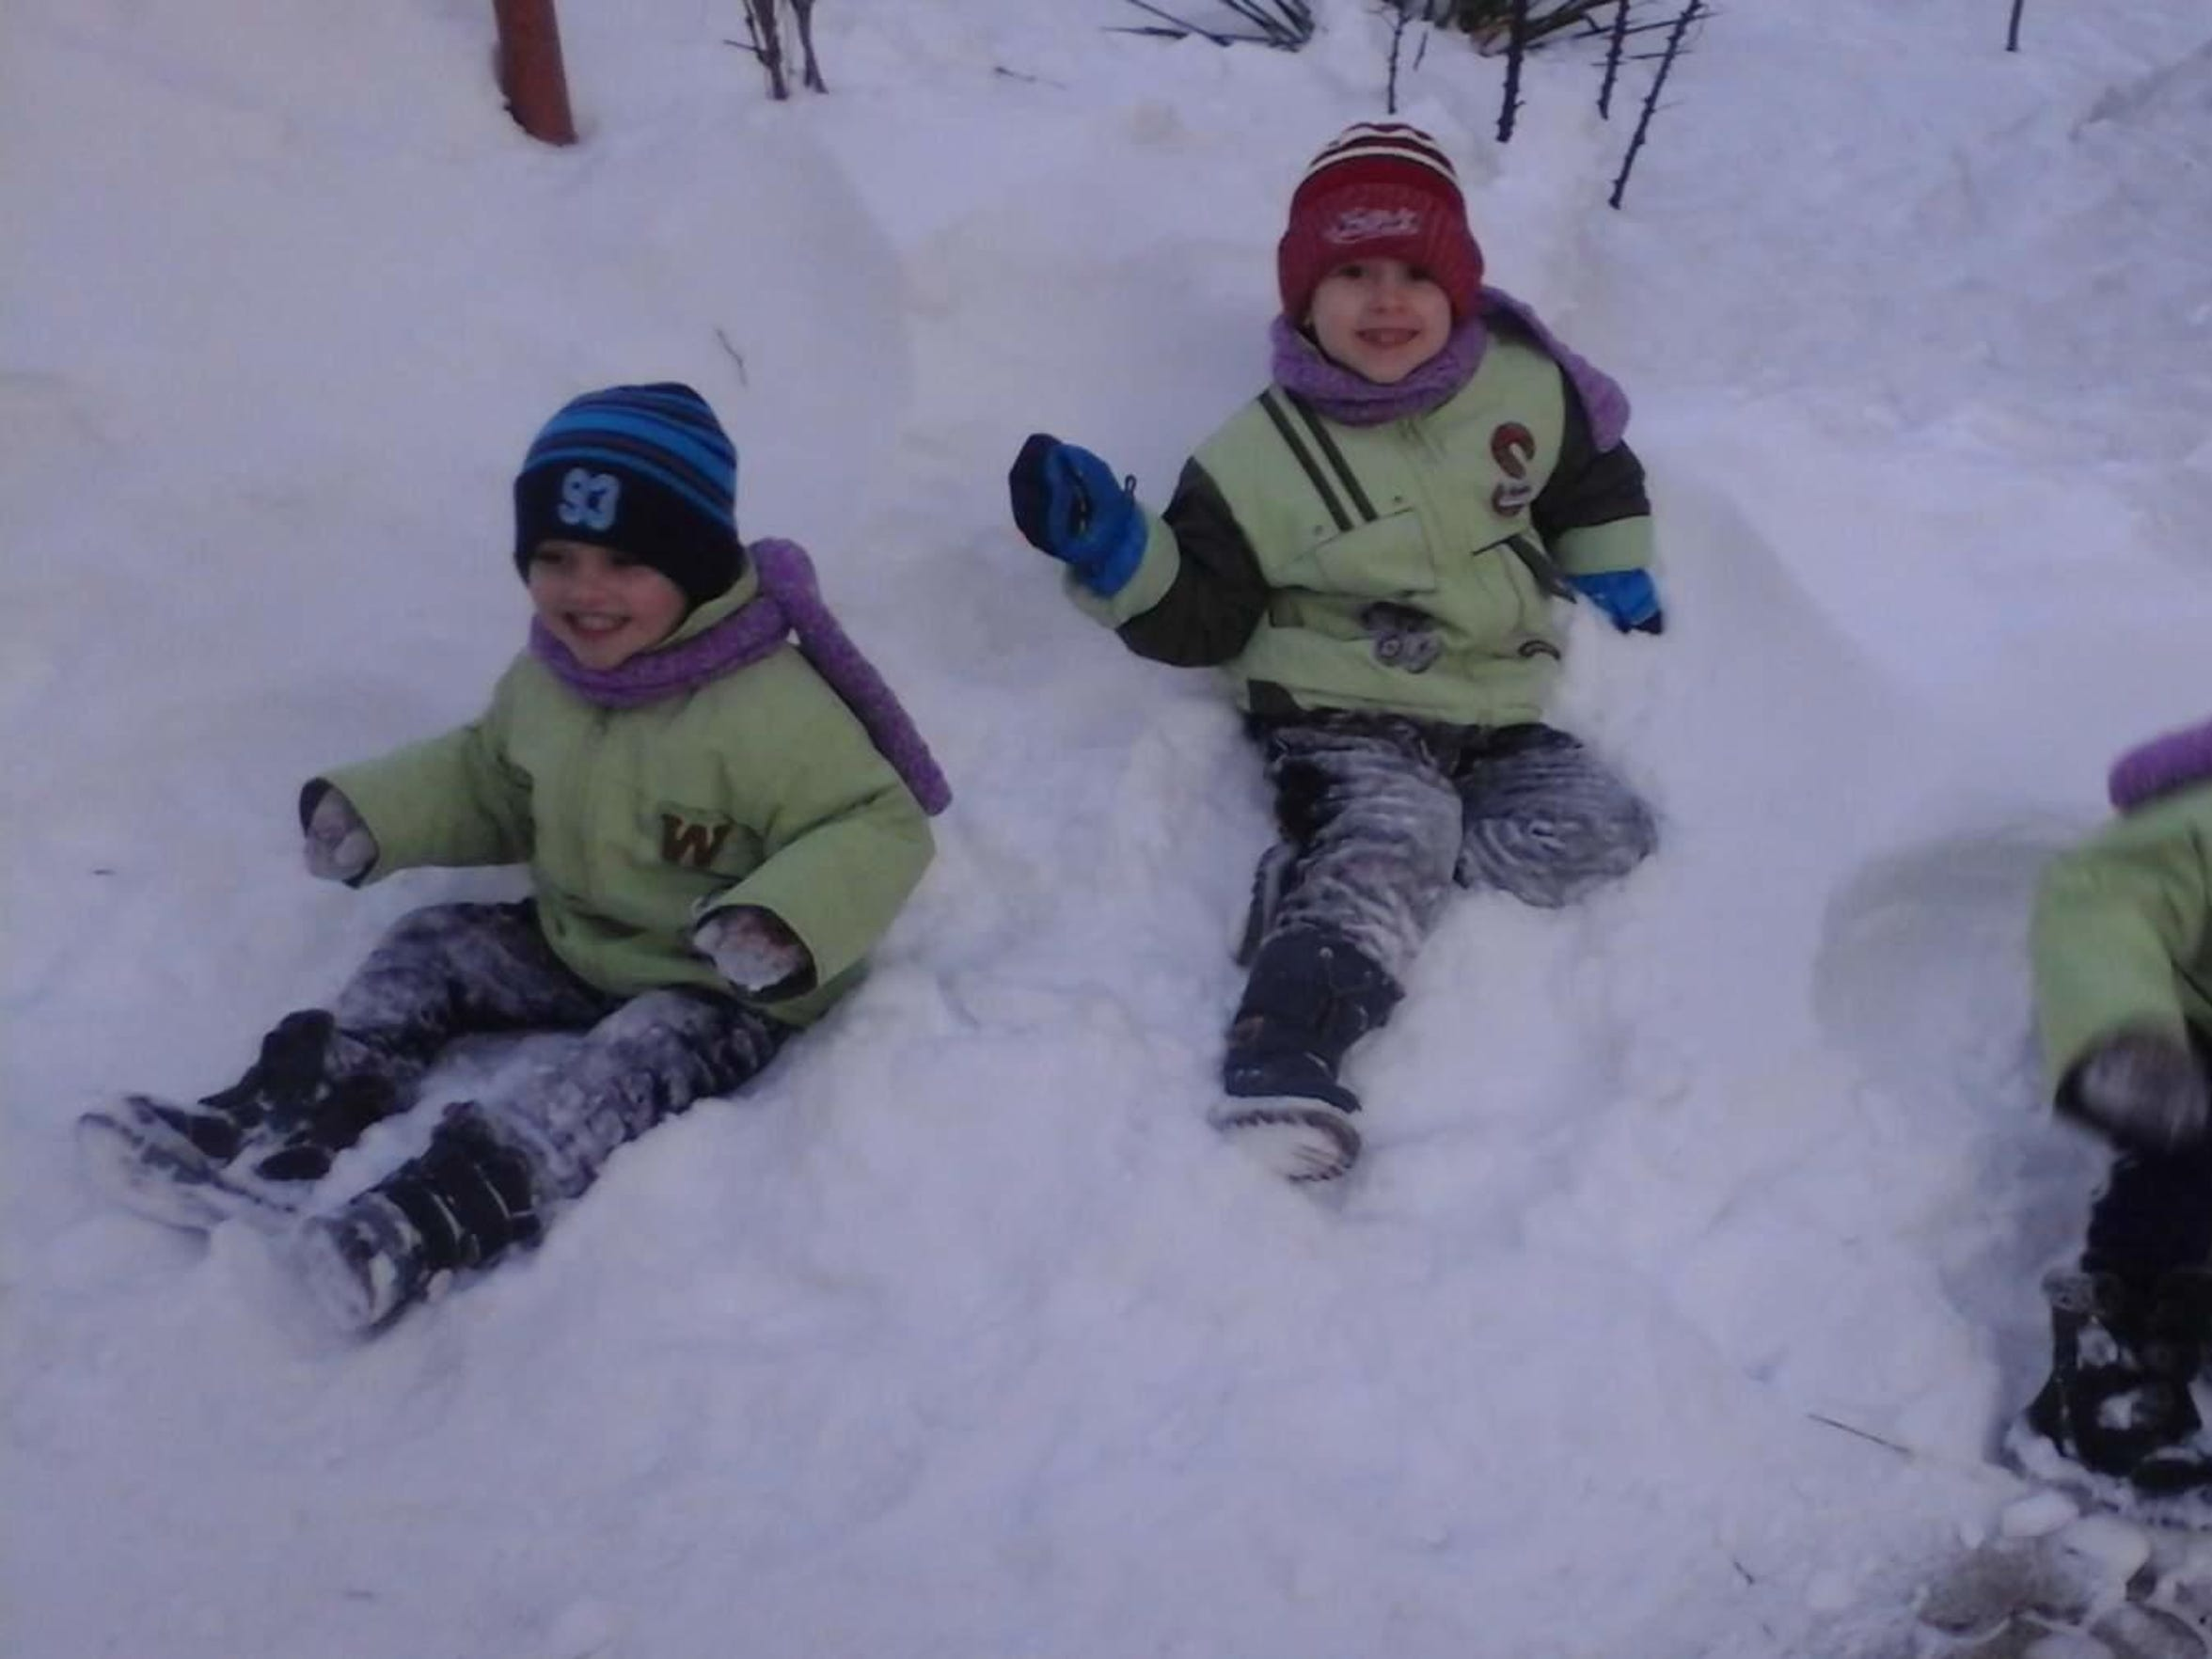 The Malac children play in the snow in Moldova last winter.